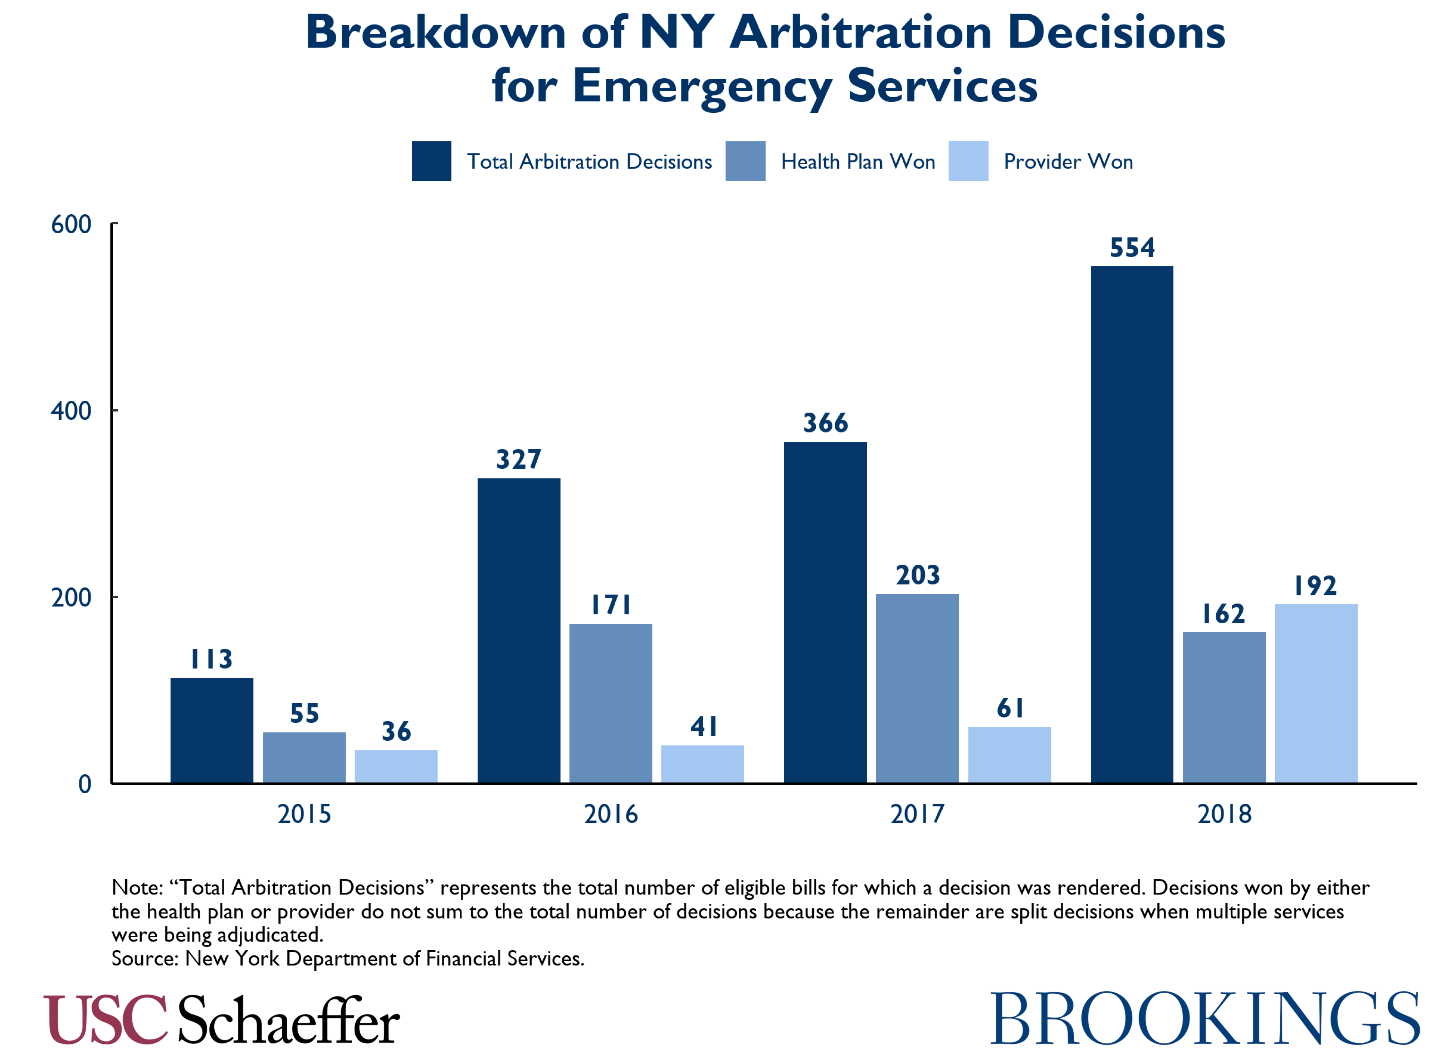 Breakdown of NY arbitration decisions for emergency services